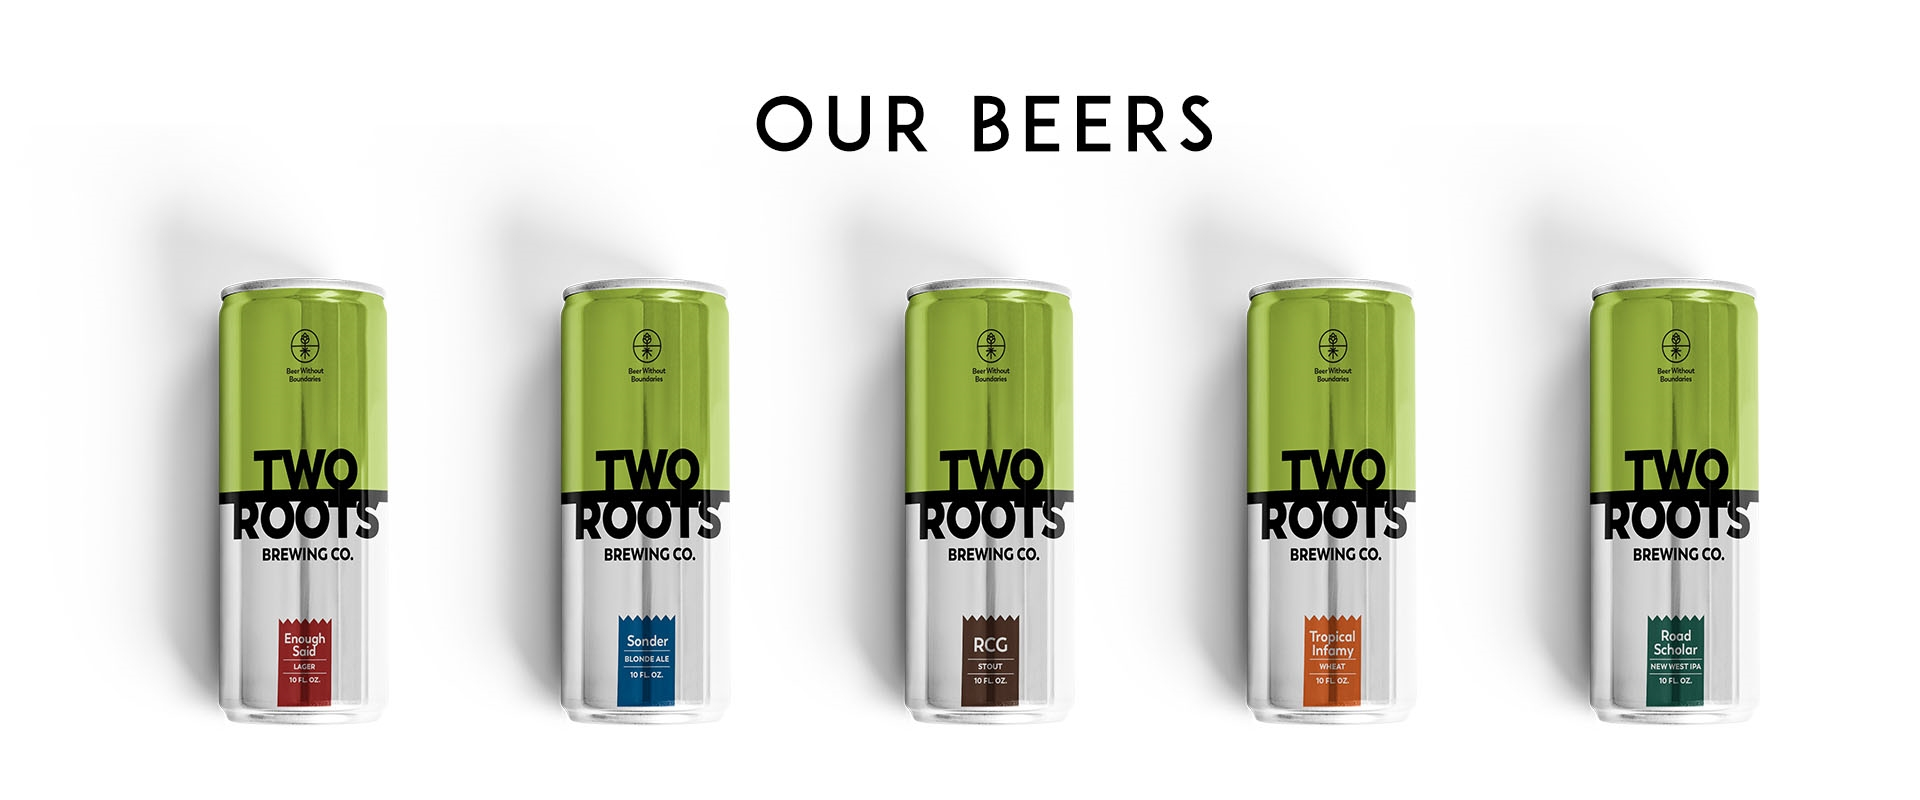 Two Roots beers